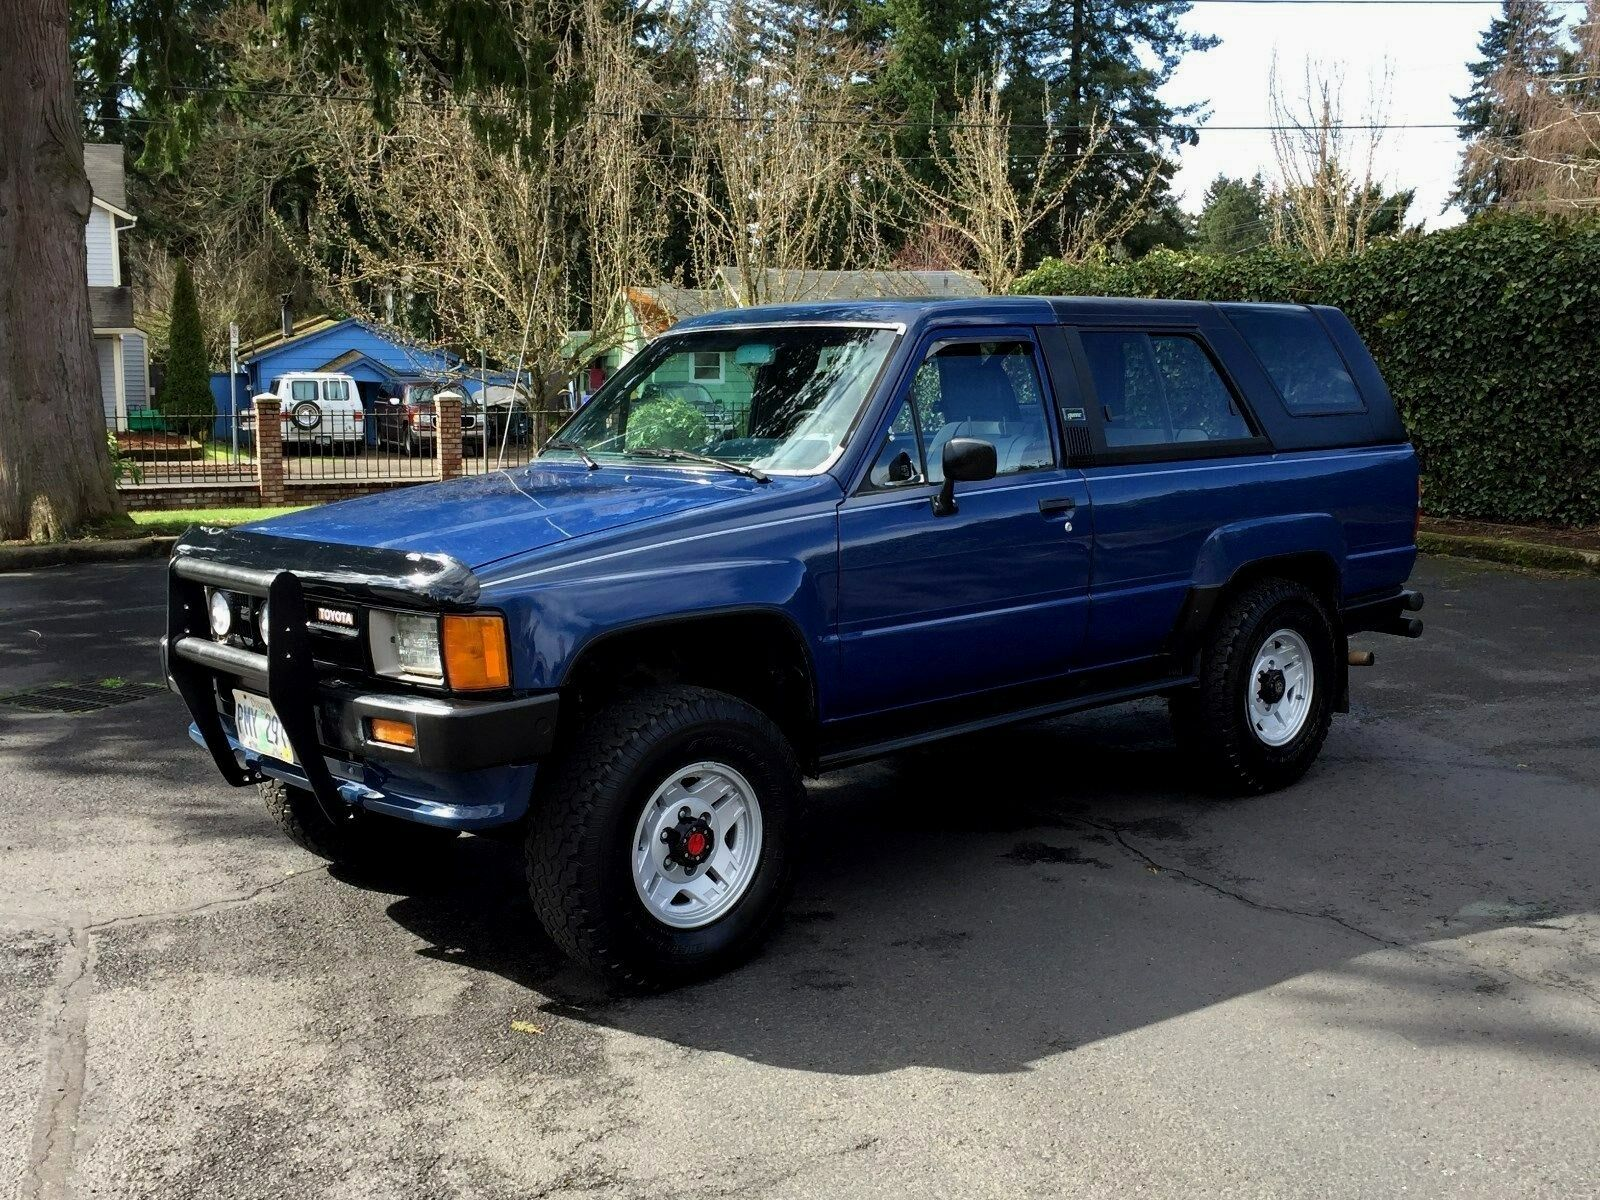 1986 toyota 4 runner 4x4 5 speed 22re 4 39 cyl eng 39 125k orig miles rust free nice used toyota. Black Bedroom Furniture Sets. Home Design Ideas